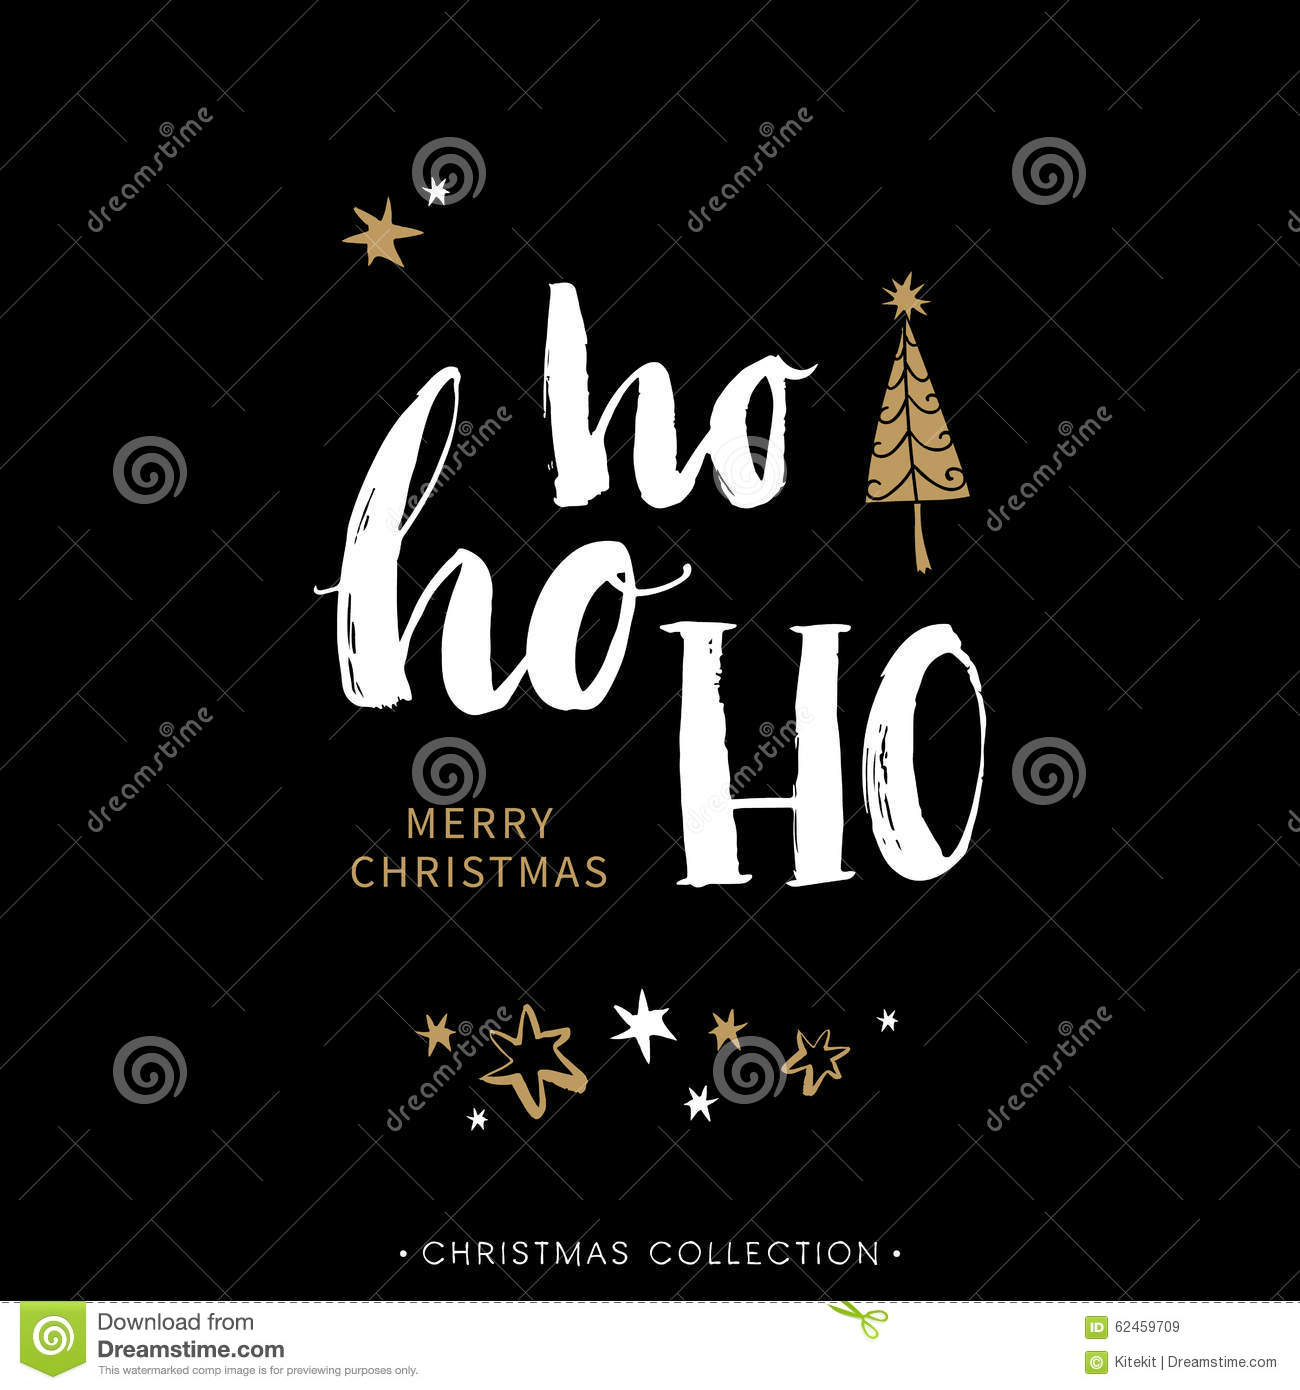 Merry Christmas Greeting Card With Calligraphy. Hoho. Stock Vector - Image: 62459709